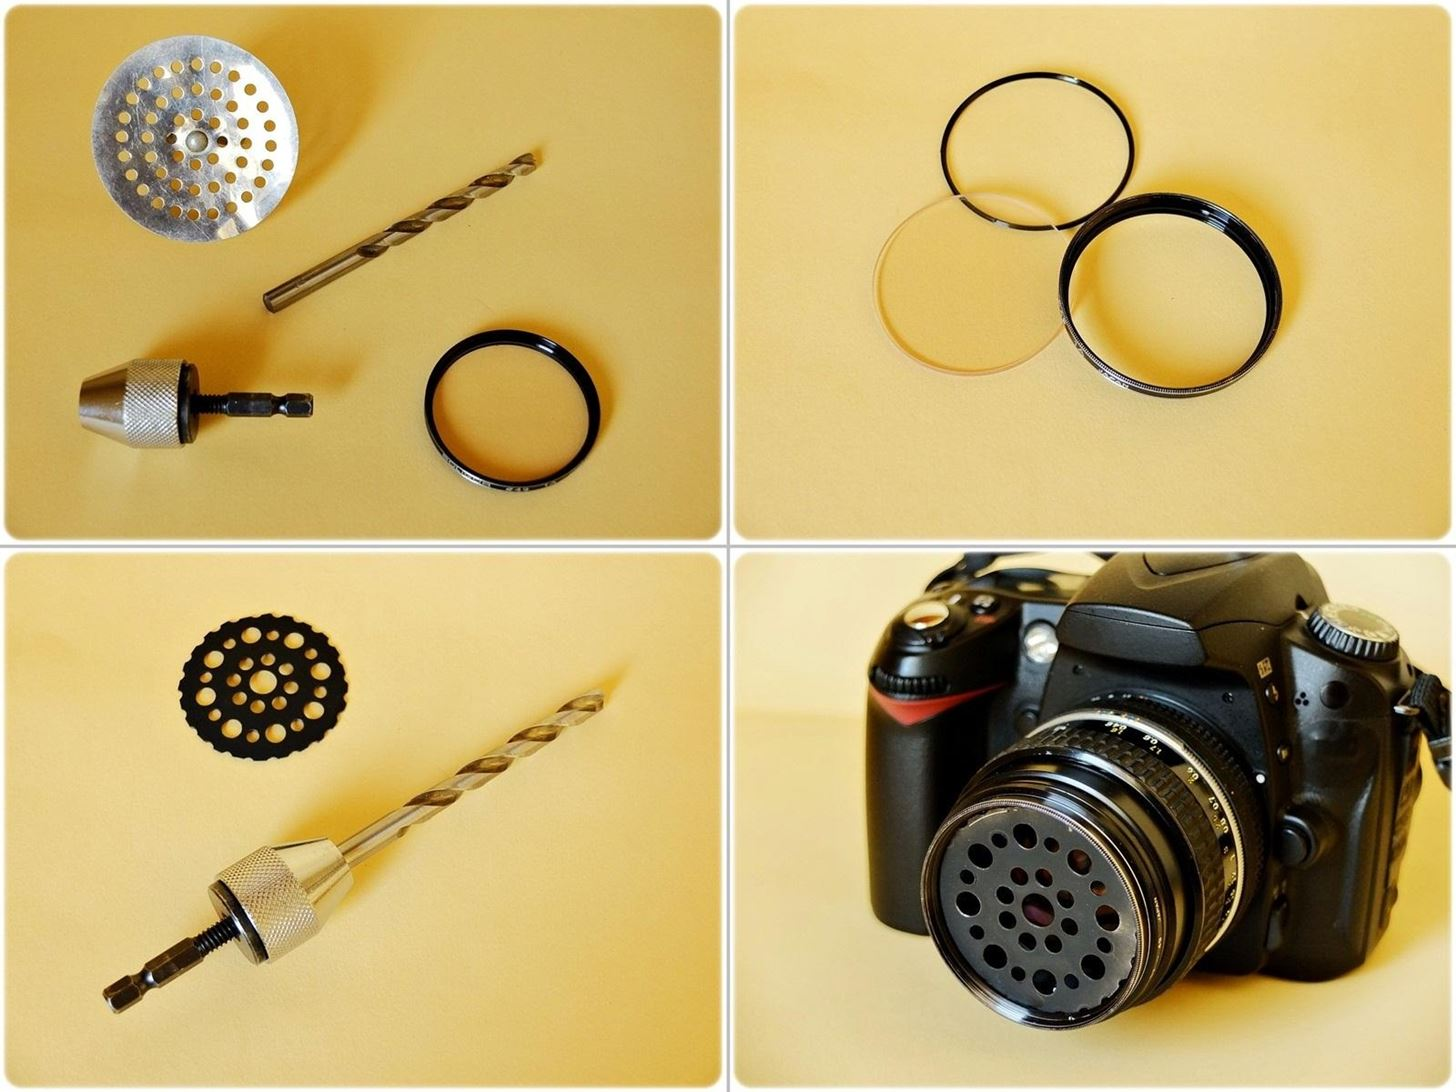 How to Turn a Sink Strainer into a Soft Focus Camera Lens Filter